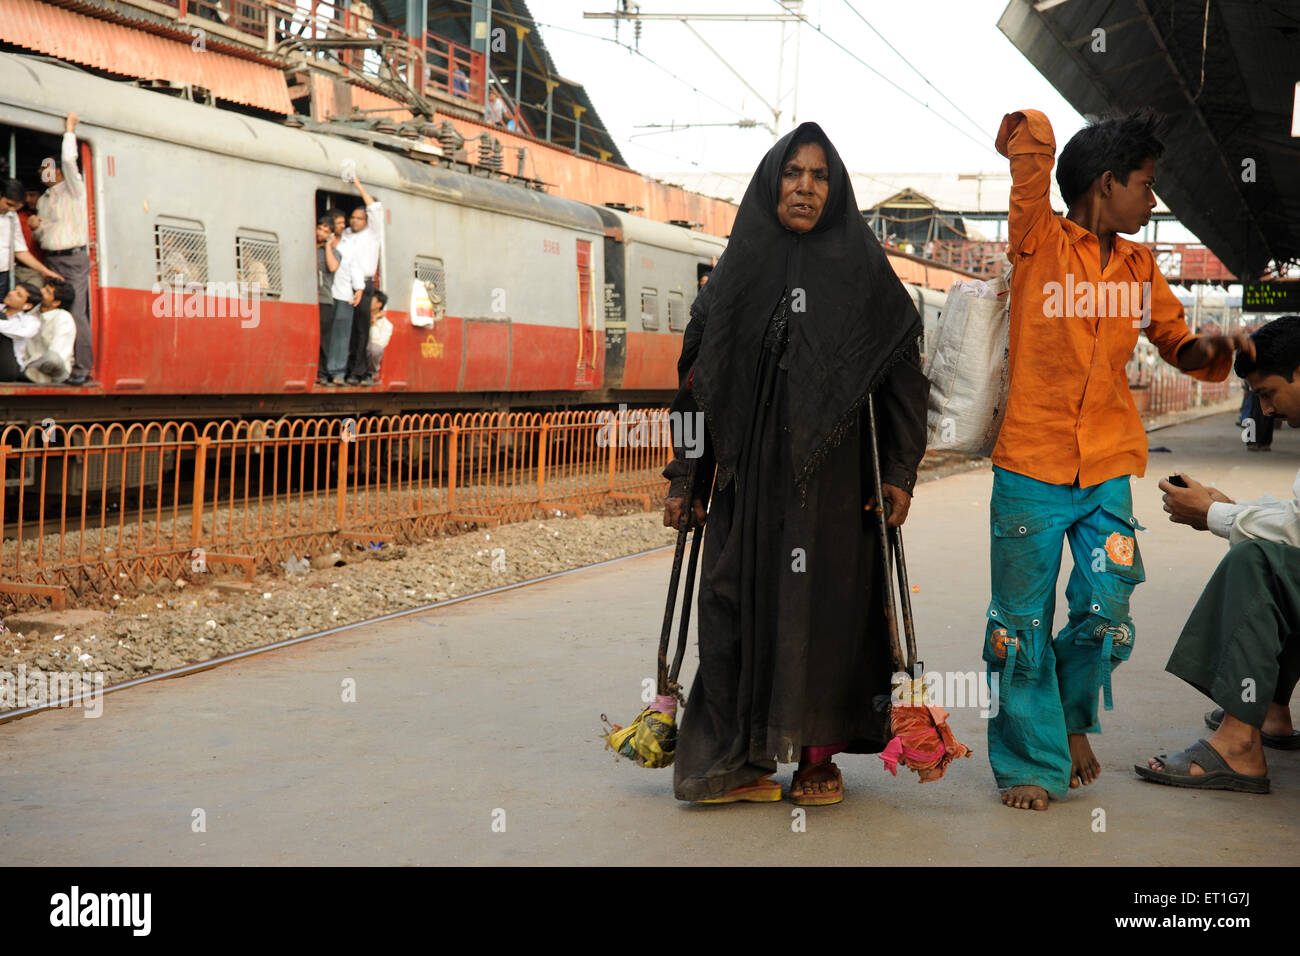 Handicap muslim lady with crutches on platform ; India NO MR - Stock Image